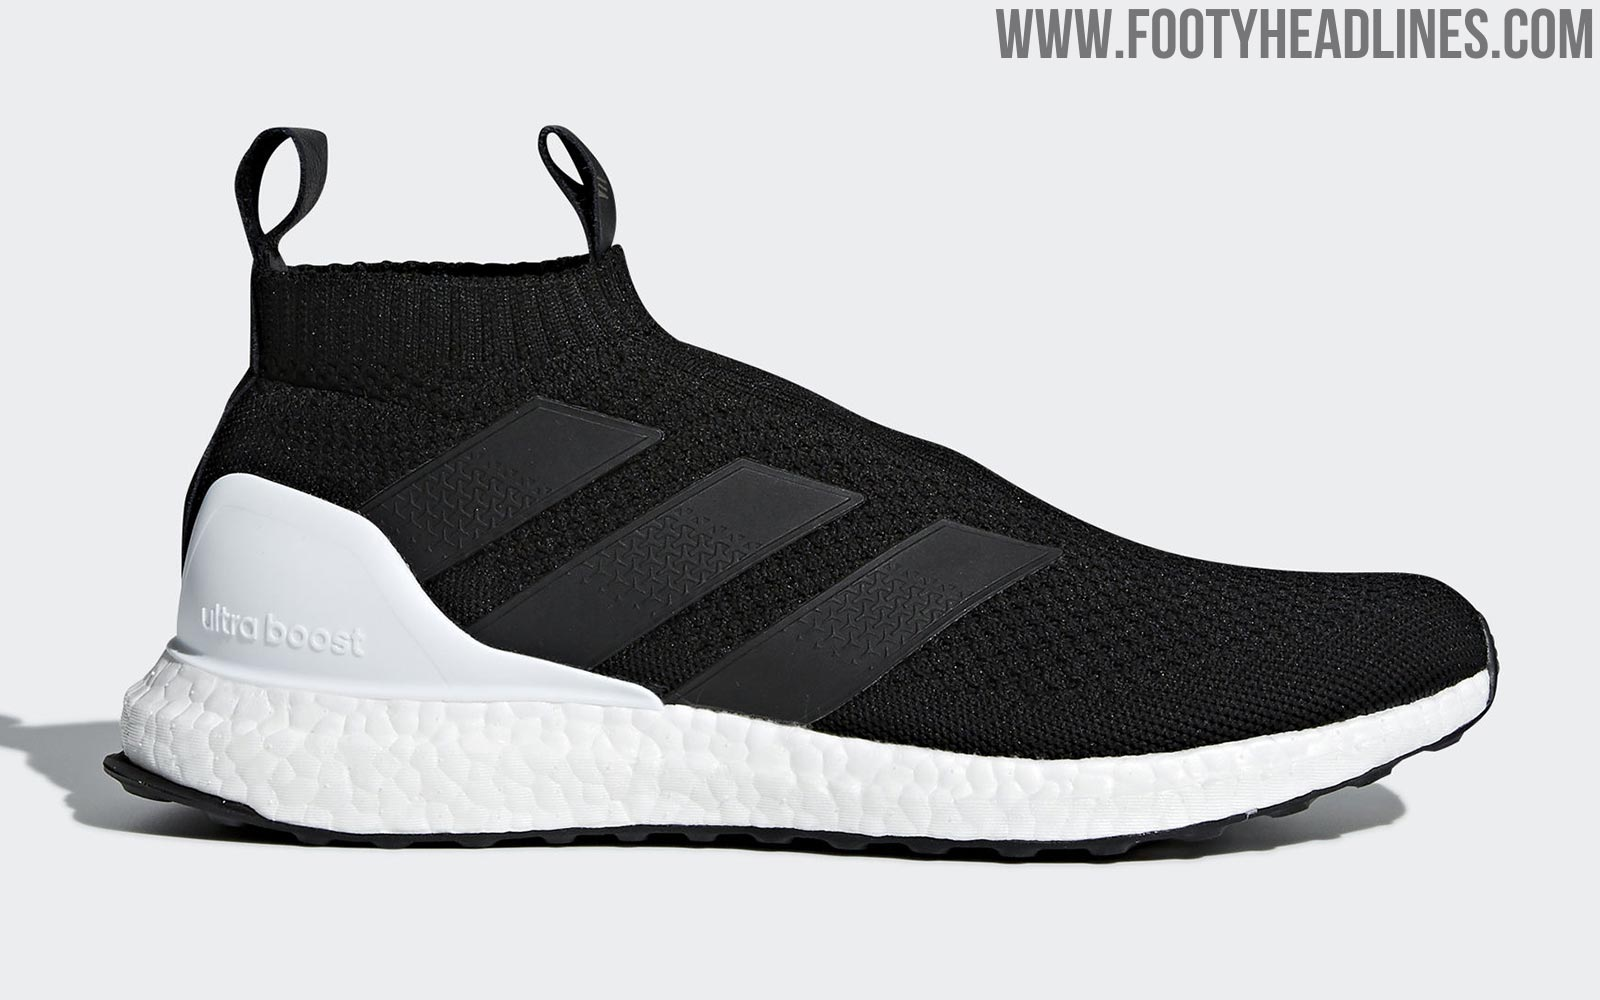 ac5956001a278 Shop Three Stunning Adidas Ace 16+ Ultra Boost Sneakers Released